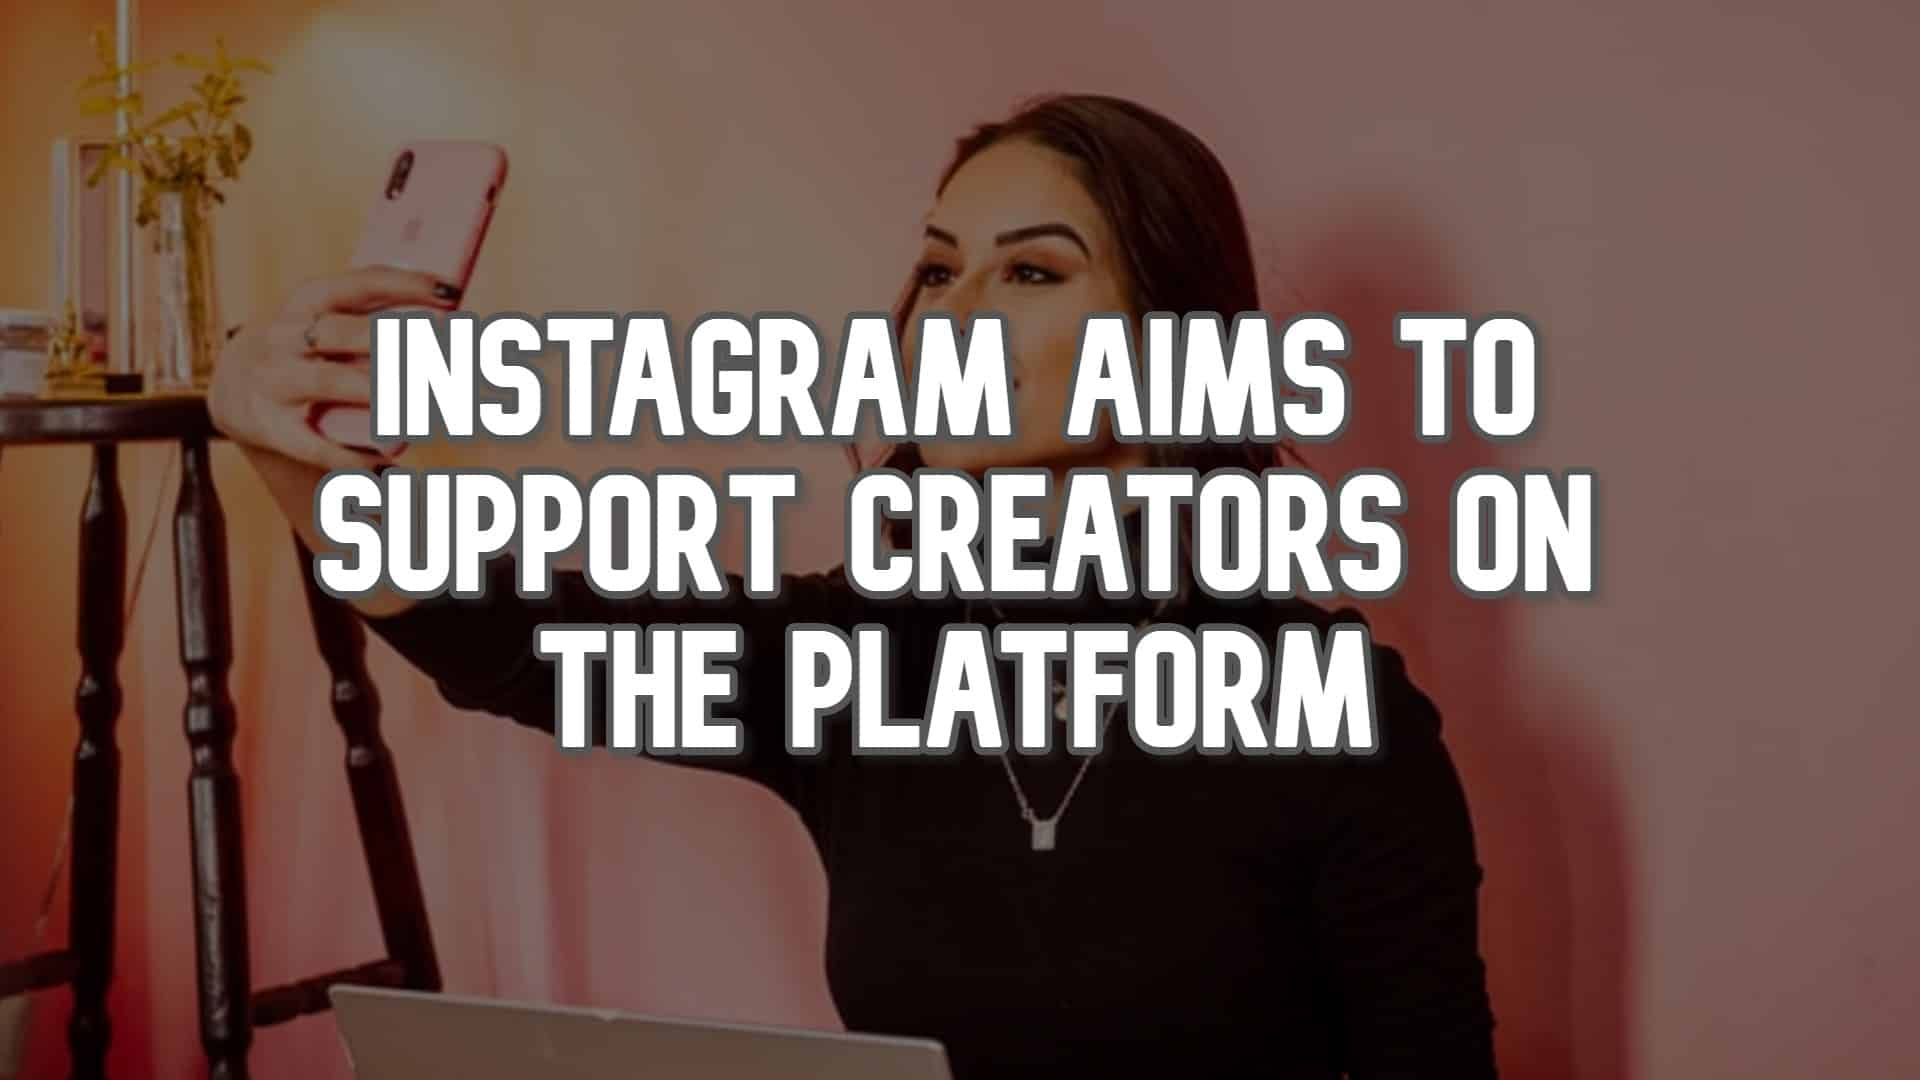 Instagram-Aims-to-Support-Creators-on-the-Platform.jpg